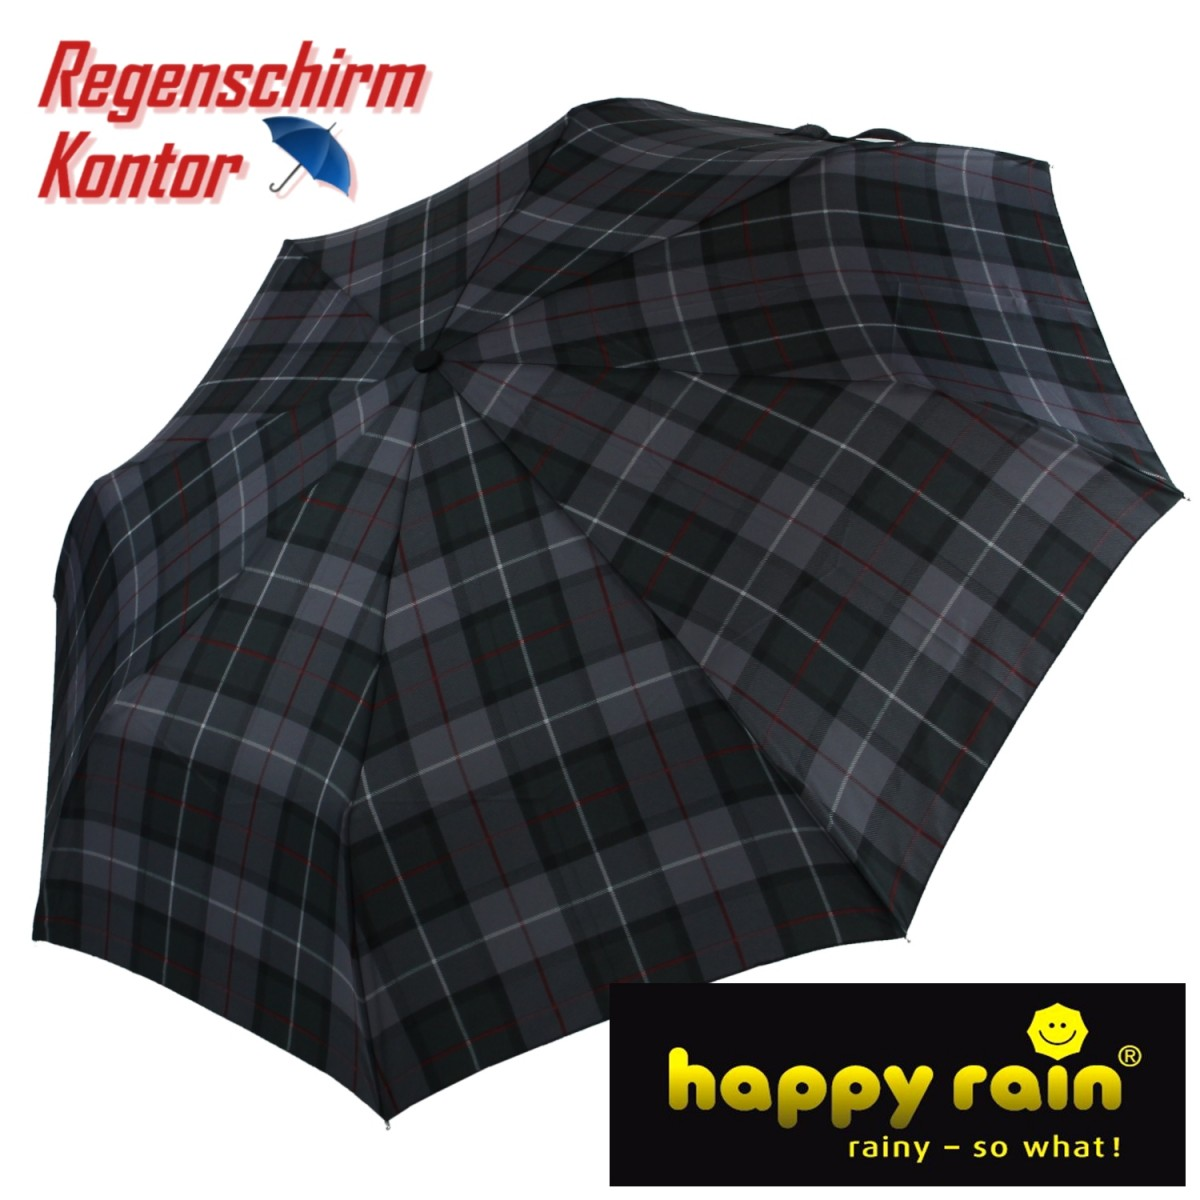 Taschenschirm Super Mini light Karo happy rain